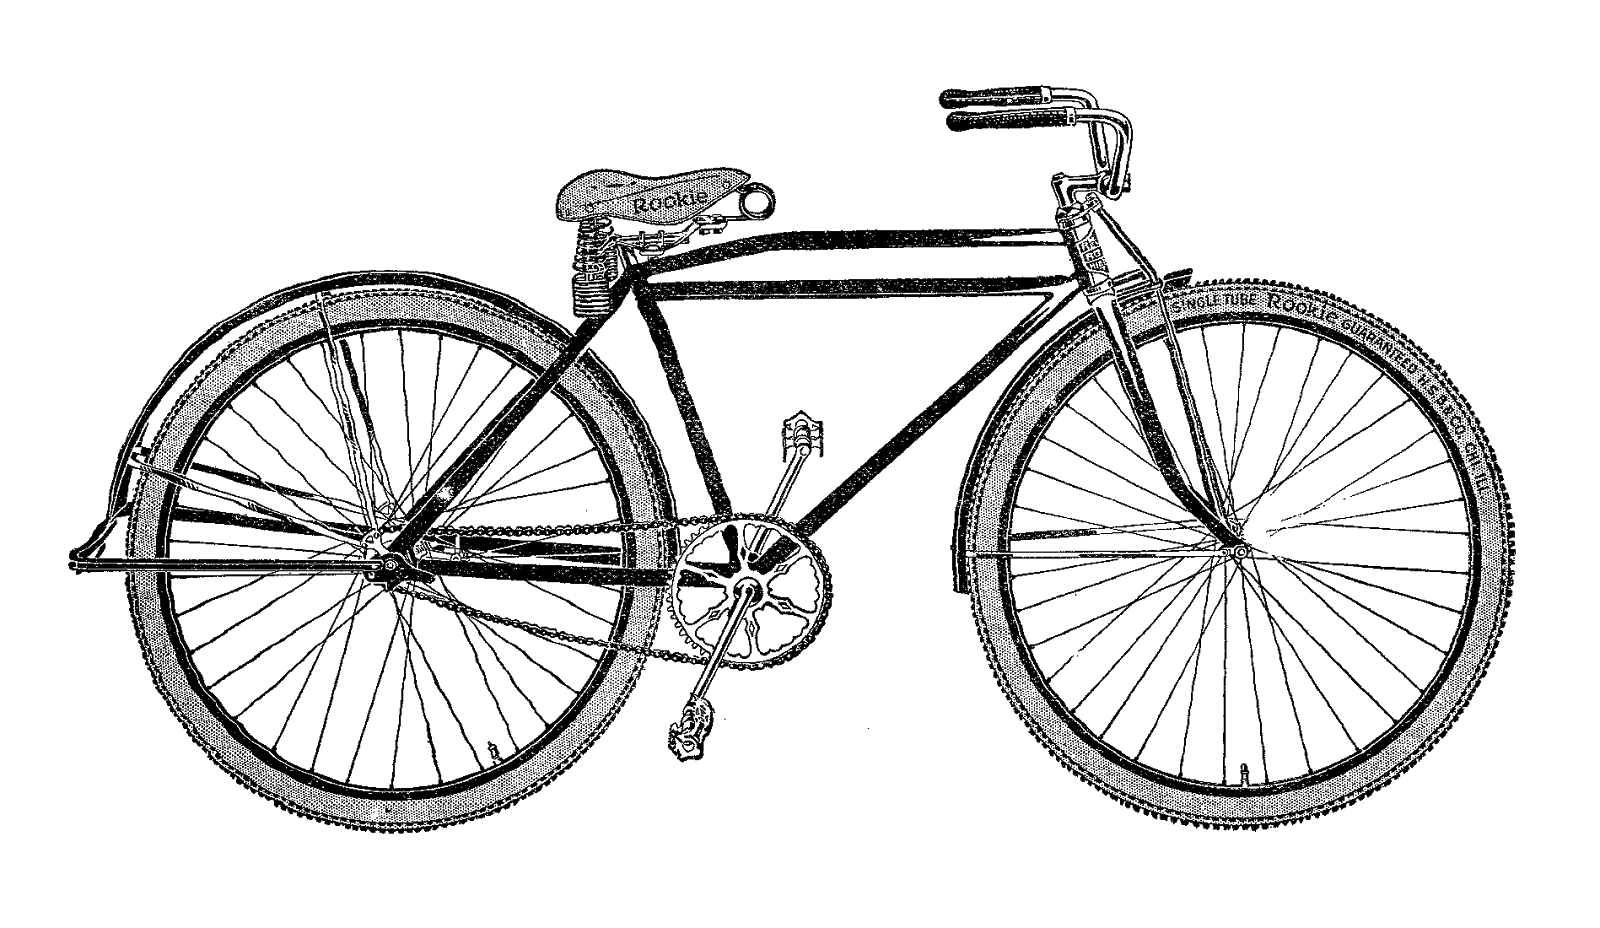 Check bike tires clipart black and white picture transparent download free bicycle clip art | Antique Images: Free Digital Bike Image ... picture transparent download